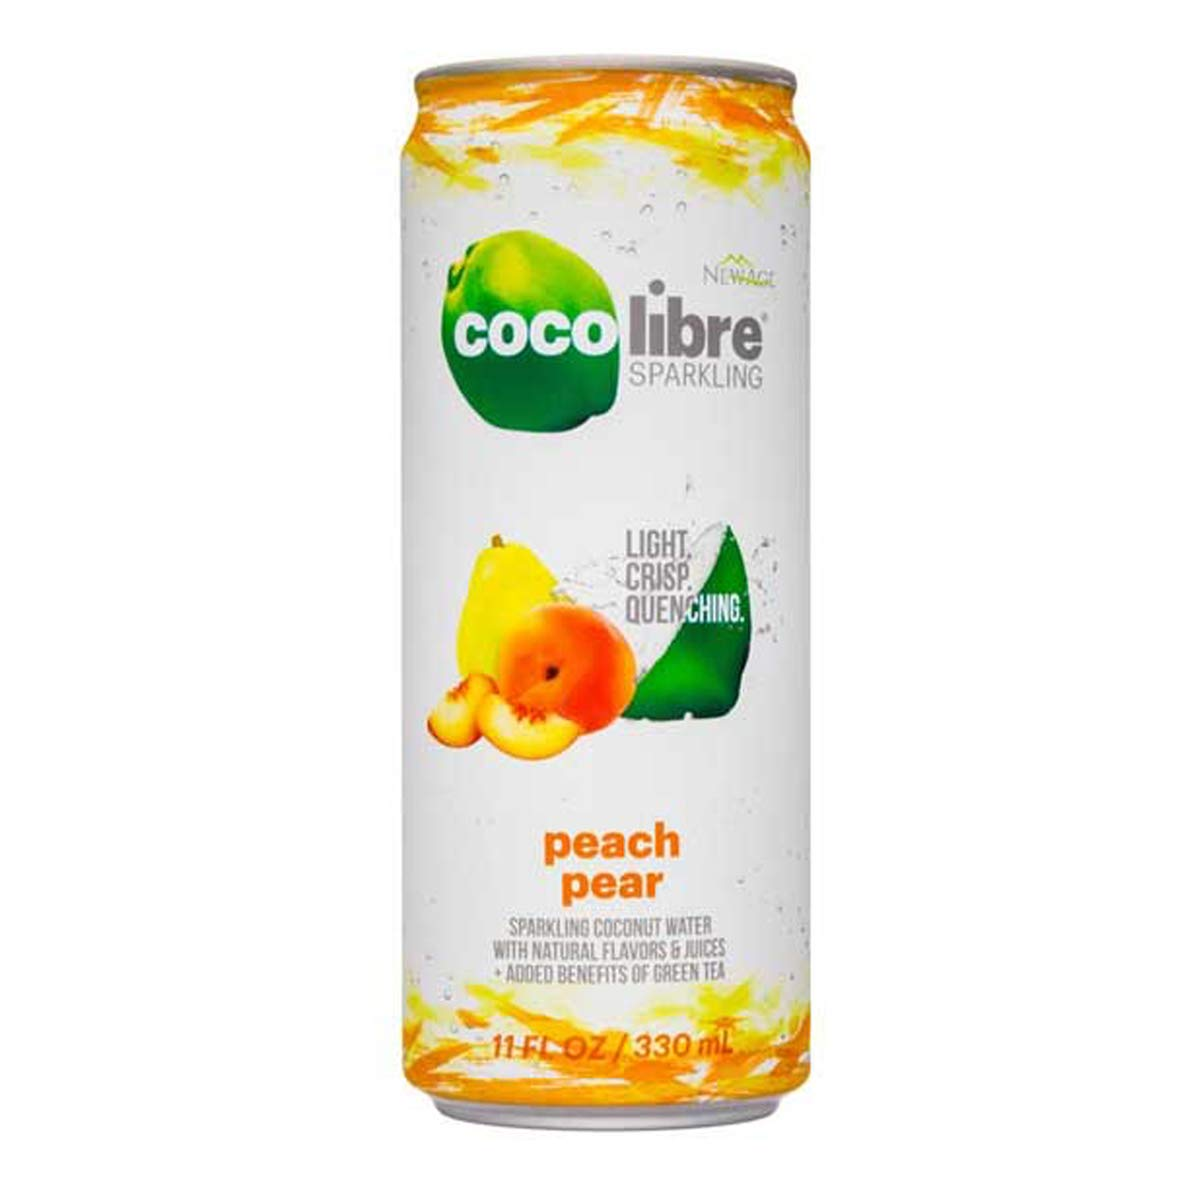 Coco Libre Sparkling Coconut Water - Peach Pear (Pack of 12)